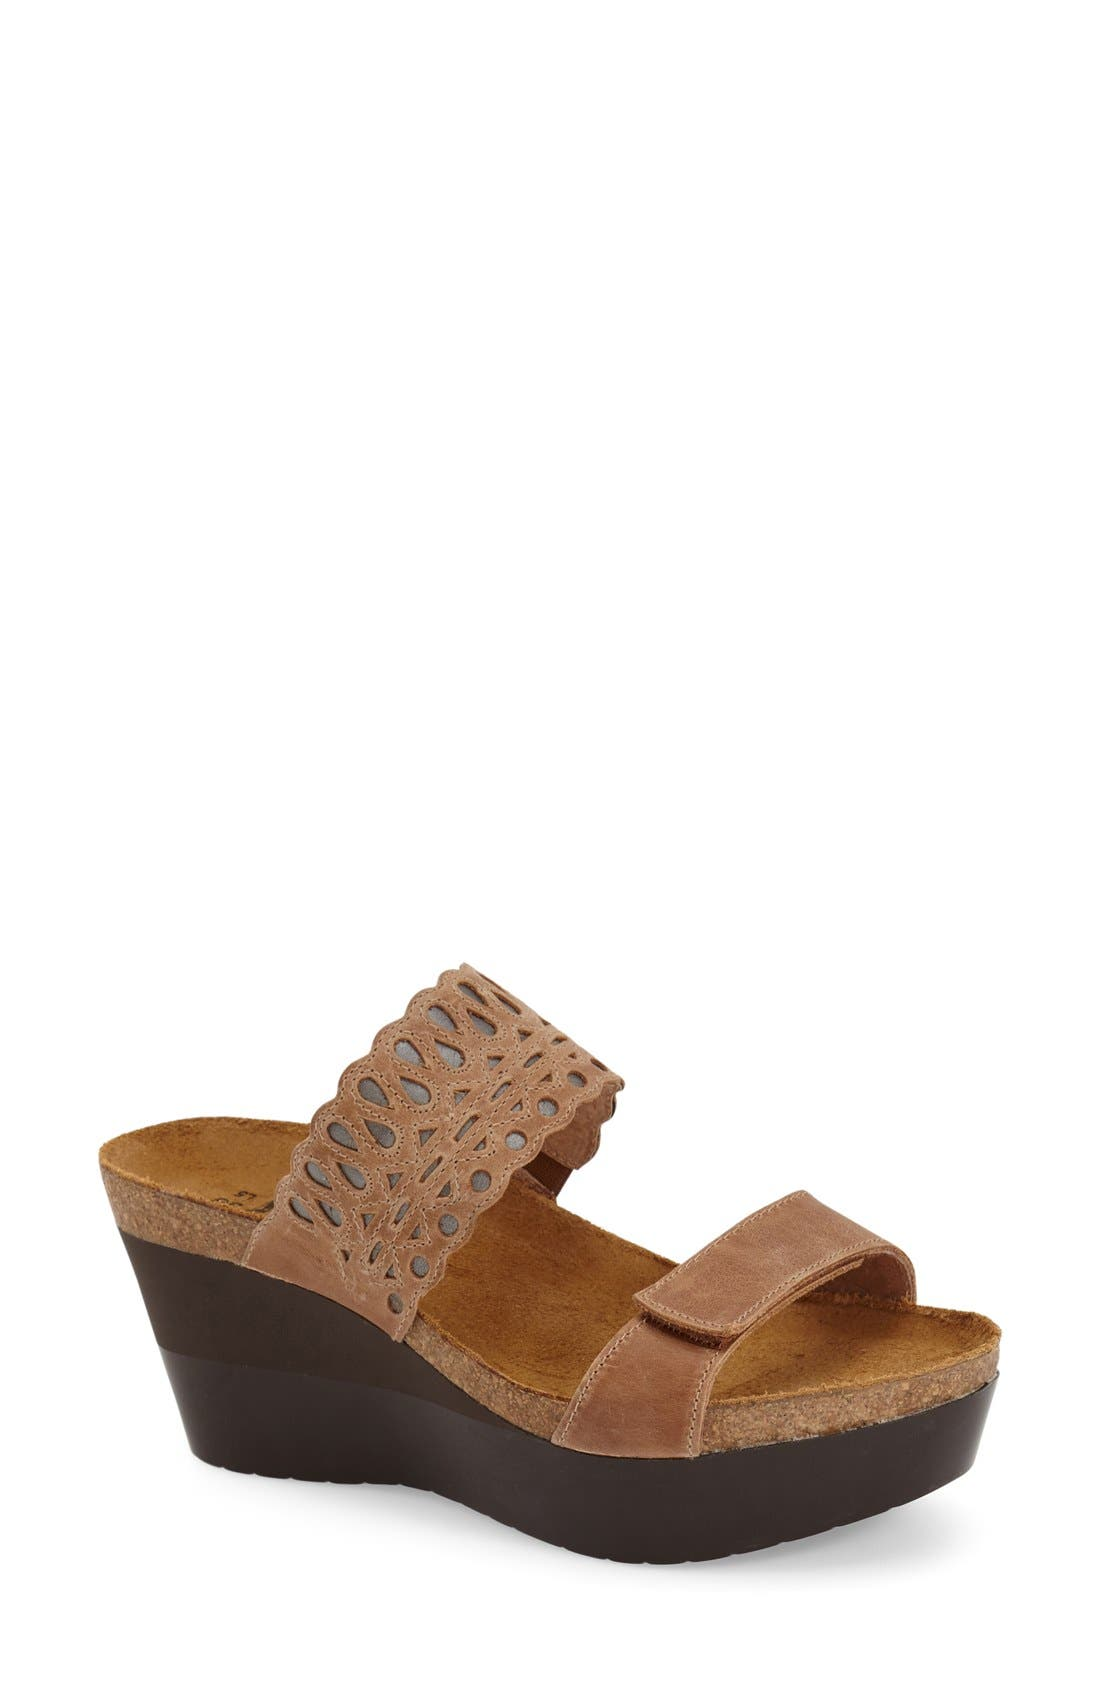 'Rise' Platform Wedge Sandal,                             Main thumbnail 1, color,                             LATTE BROWN LEATHER